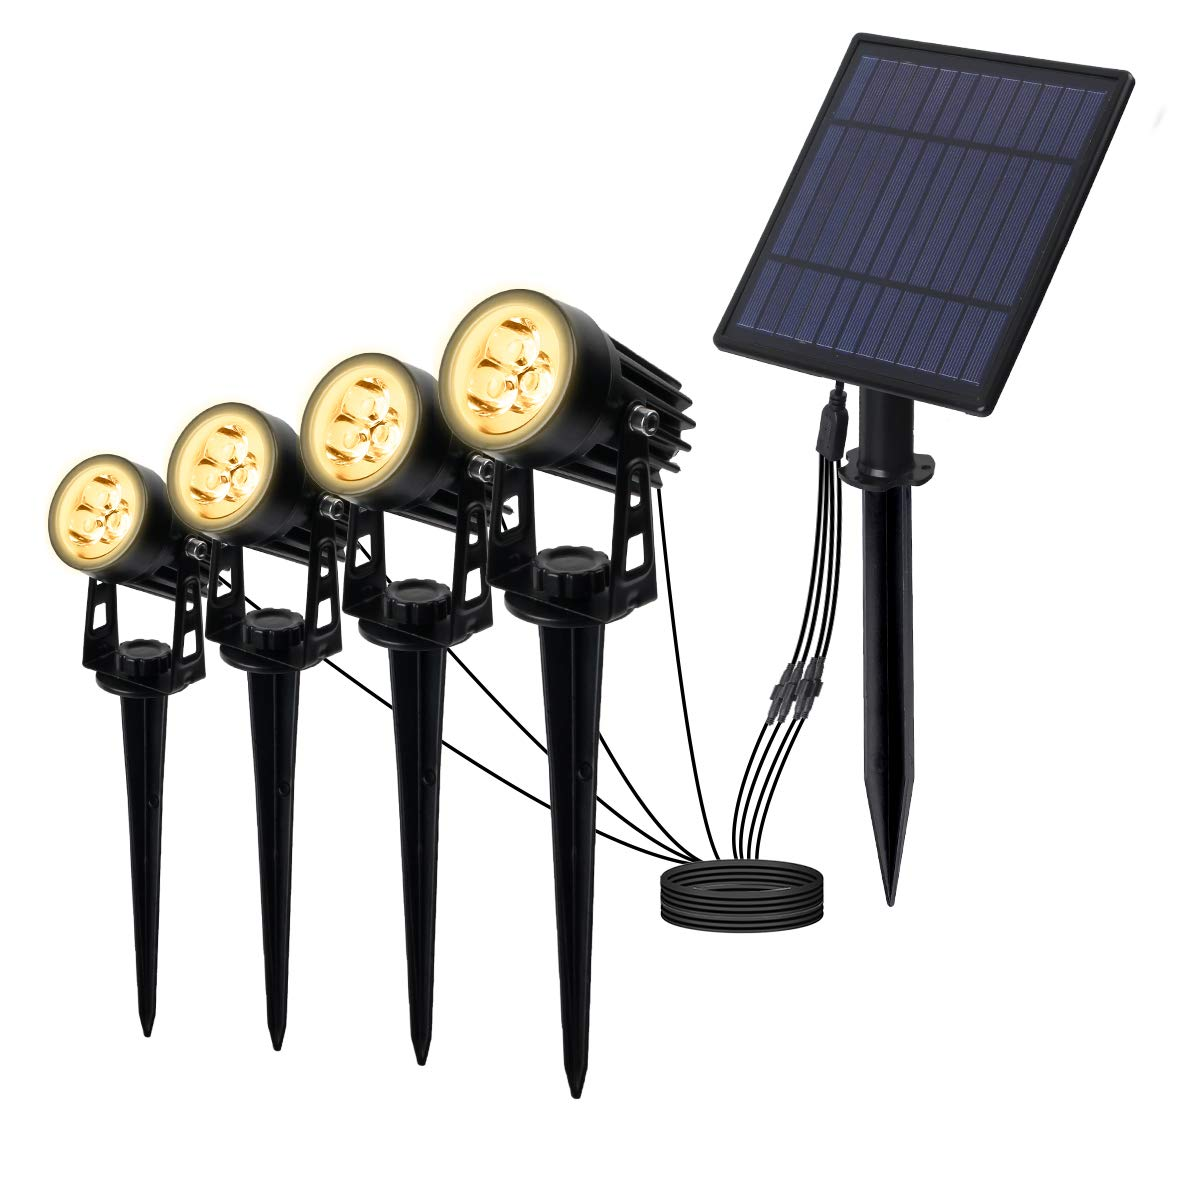 T-SUNRISE 3W Solar Spotlights, IP65 Waterproof Outdoor Solar Lights Landscape Lighting Wall Light Auto On/Off with 4 Warm White Spot Lamp for Tree,Patio, Yard, Garden